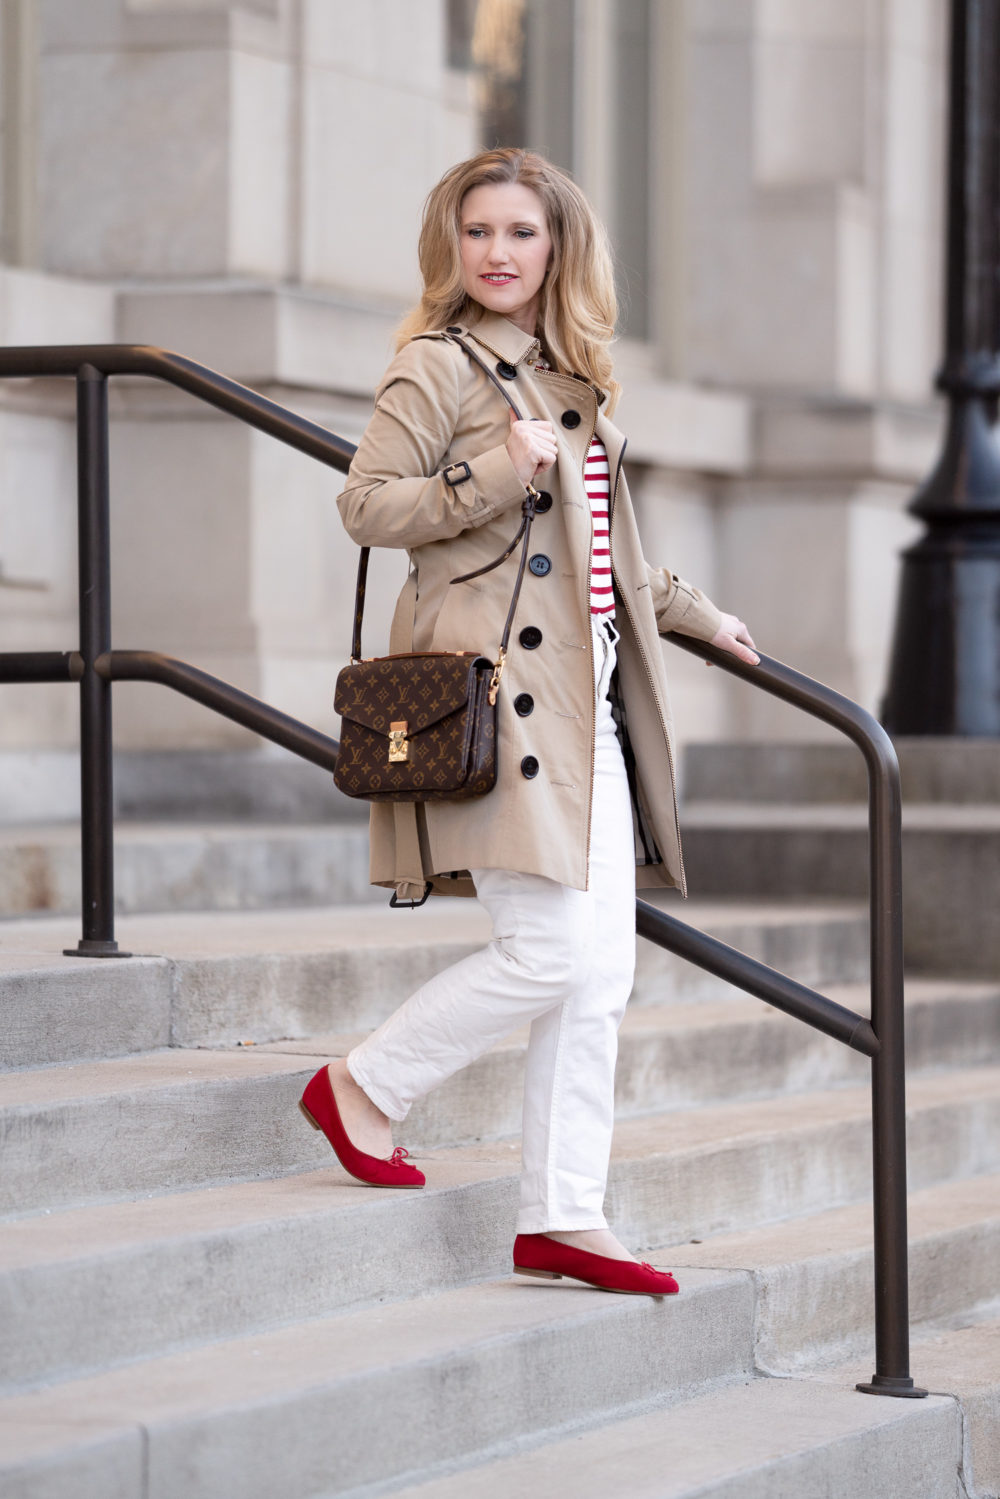 Petite Fashion Blog | MargauxNY Ballerina Flats | MargauxNY Demi Flats | Margaux NY Review | Everlane Cheeky Straight Jeans | Burberry Sandringham Trench | Louis Vuitton Pochette Mettis